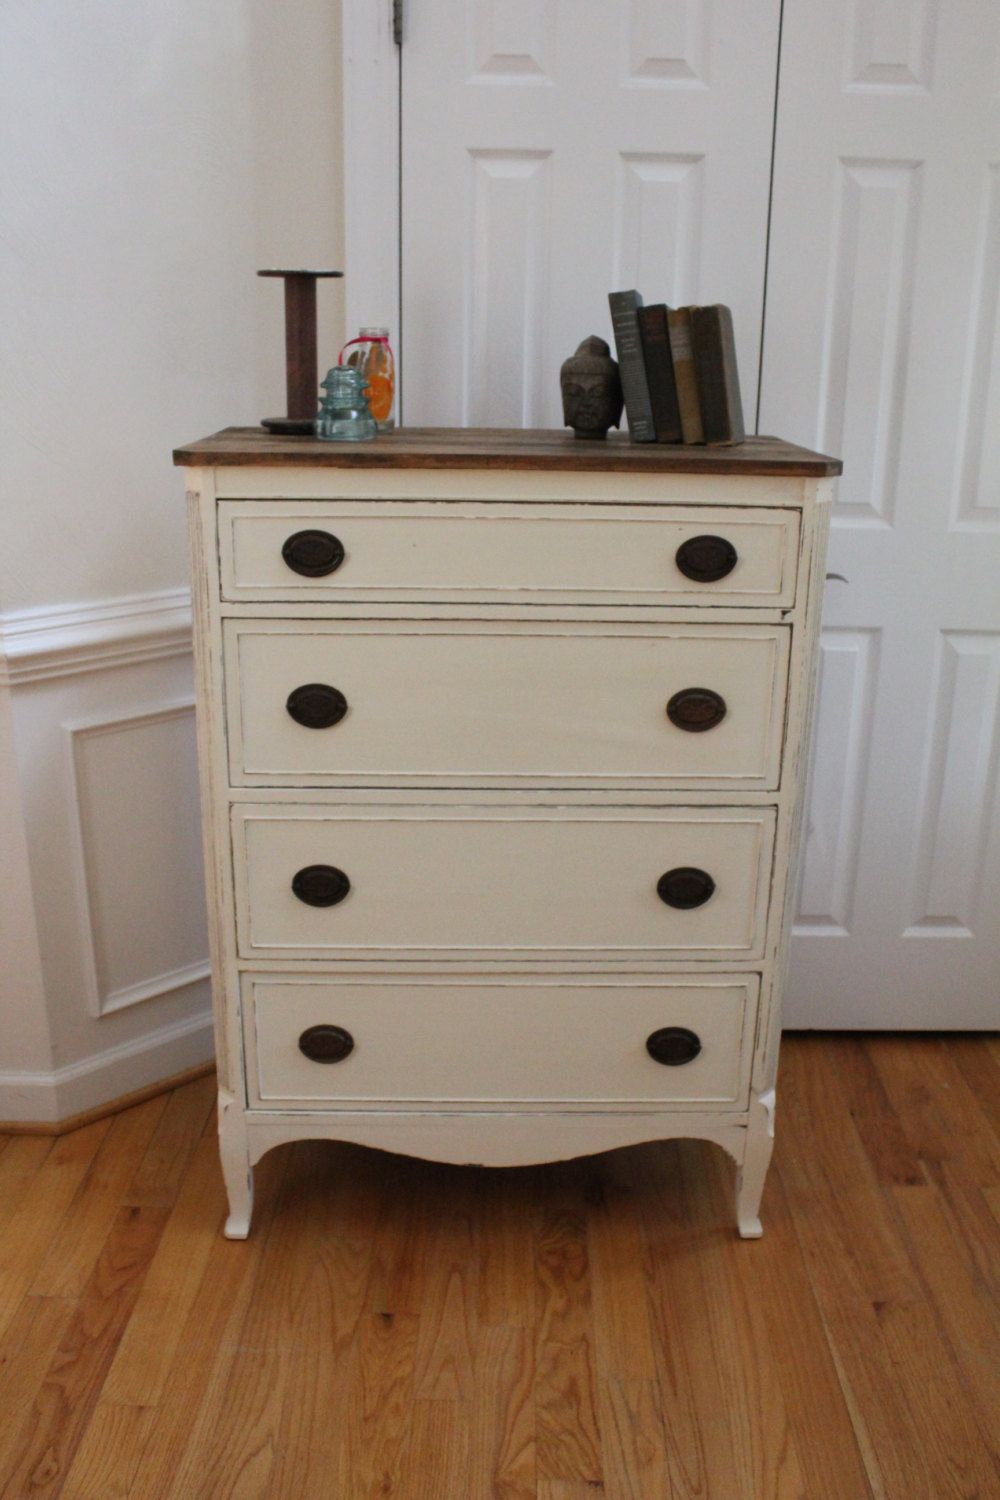 Vintage Chest Of Drawers Annie Sloan Chalk Paint Country Grey Dresser Bedroom Stained Butcher Block Top Vintage Chest Of Drawers Chalk Furniture Redo Furniture [ 1500 x 1000 Pixel ]